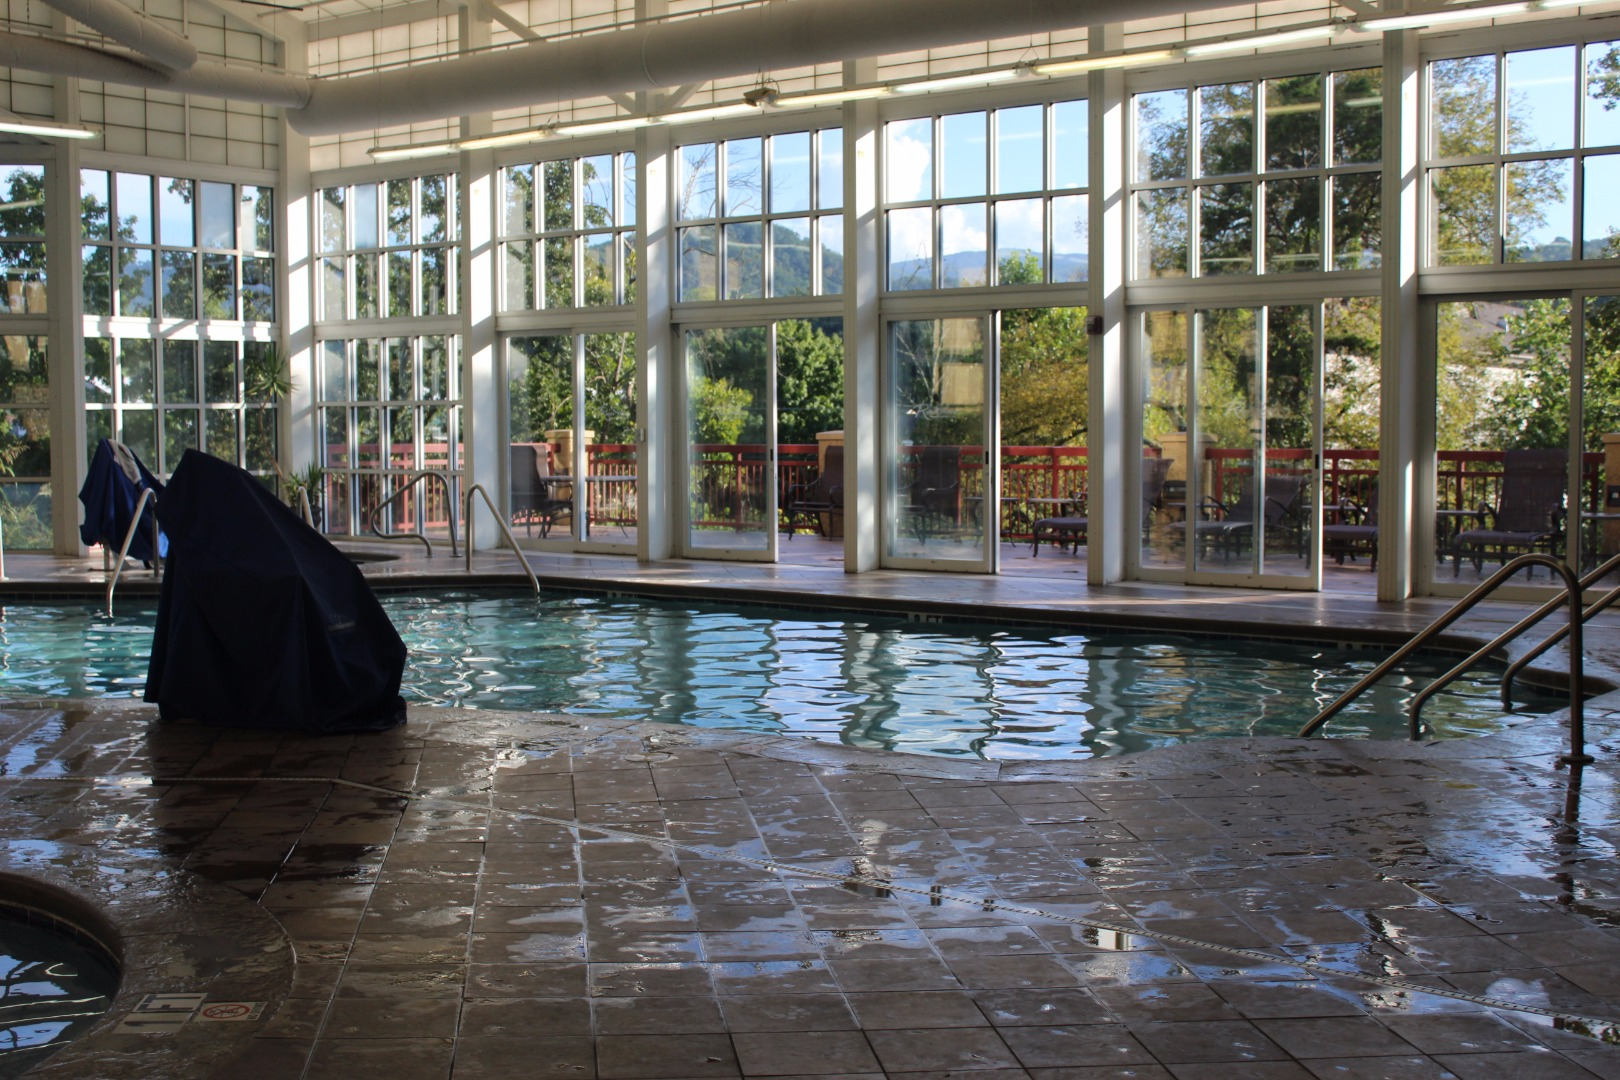 Riverstone Resort  Spa  Pigeon Forge Tn  Tripster